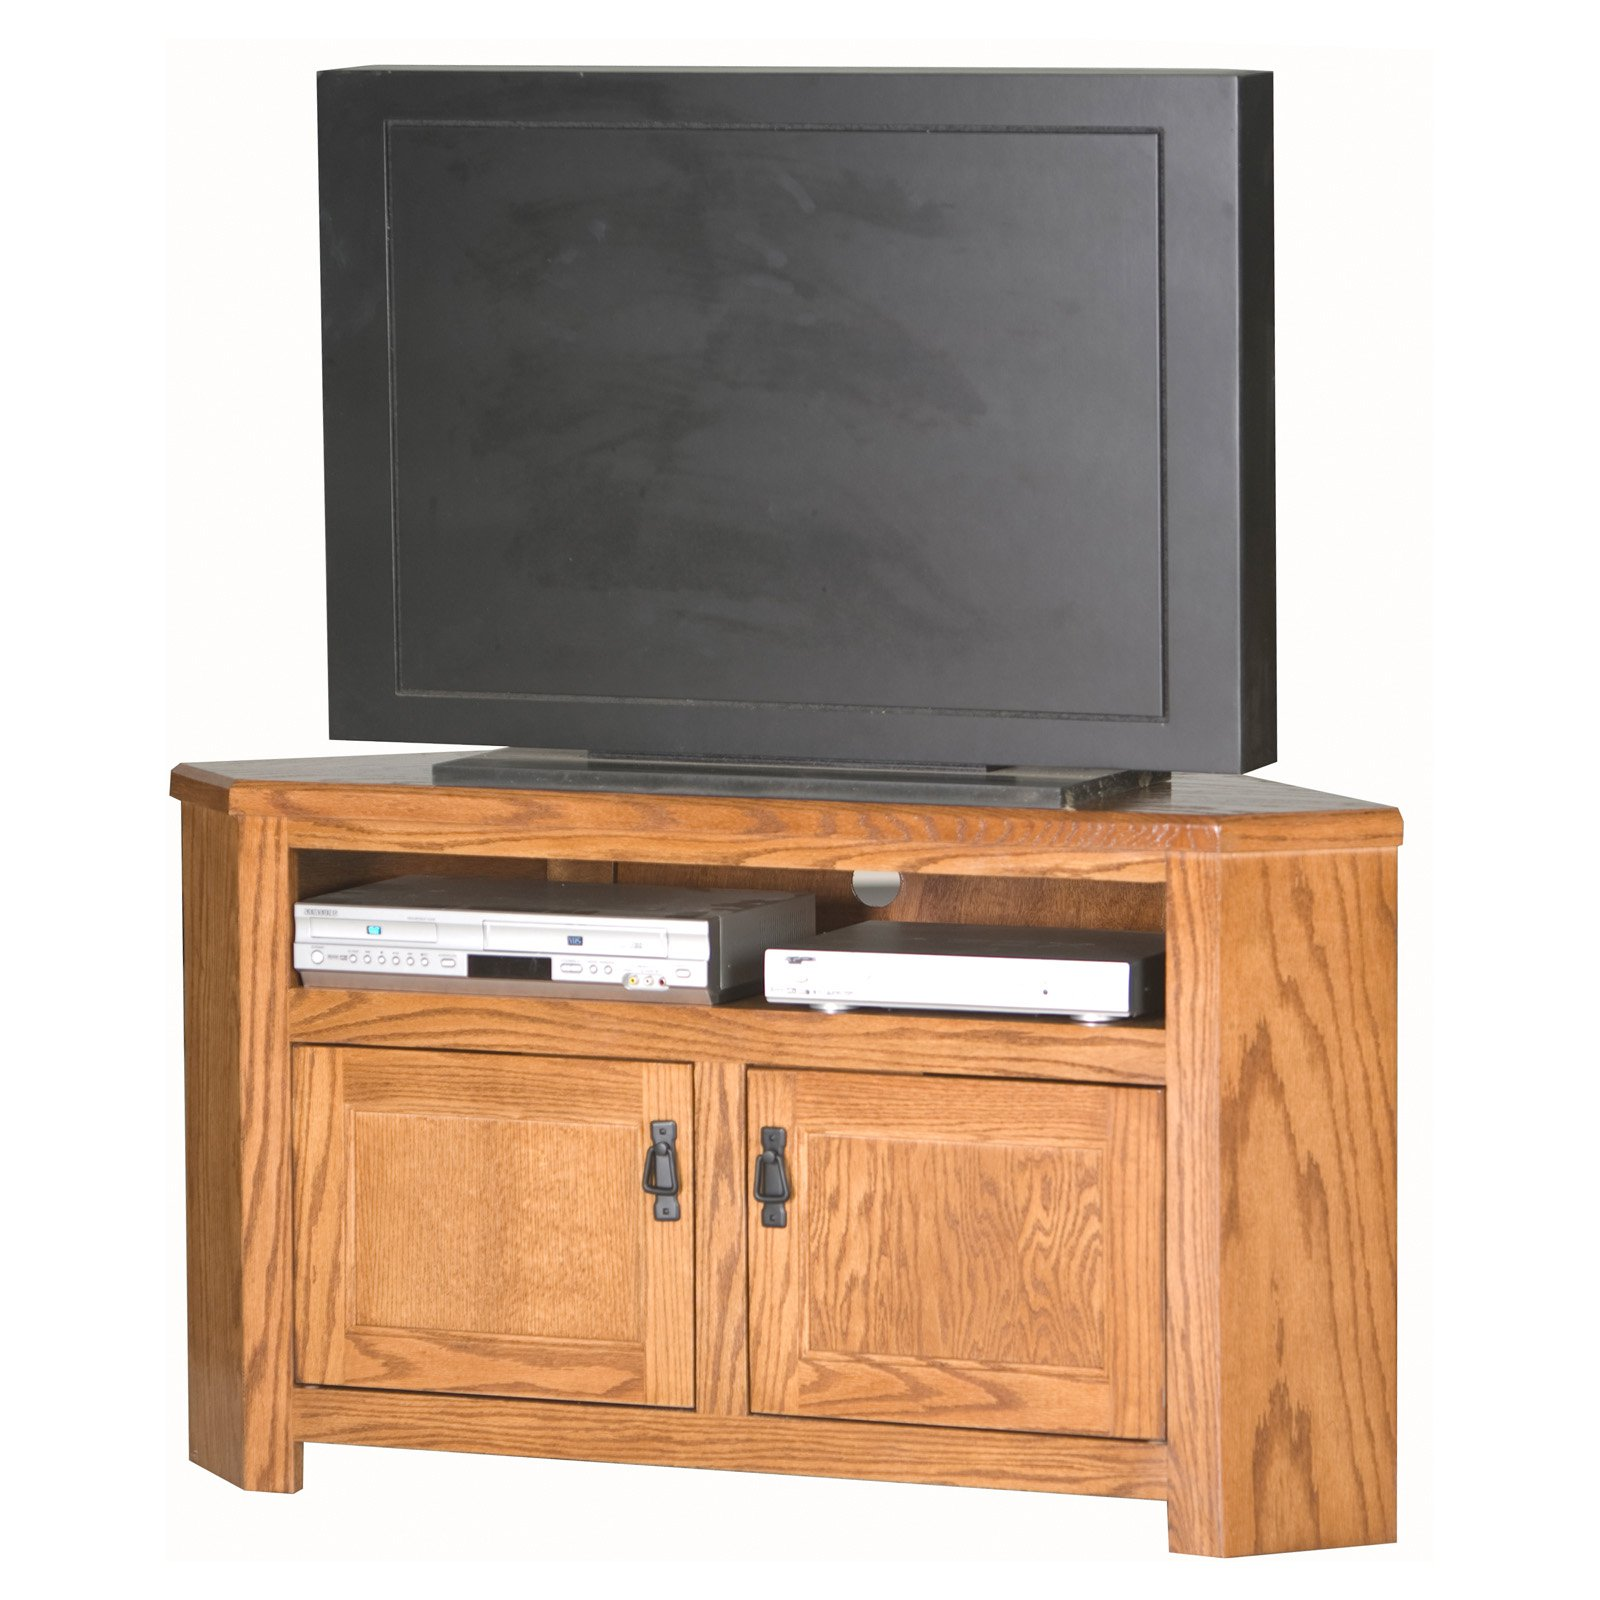 Eagle Furniture Mission 50 in. Corner Entertainment Center